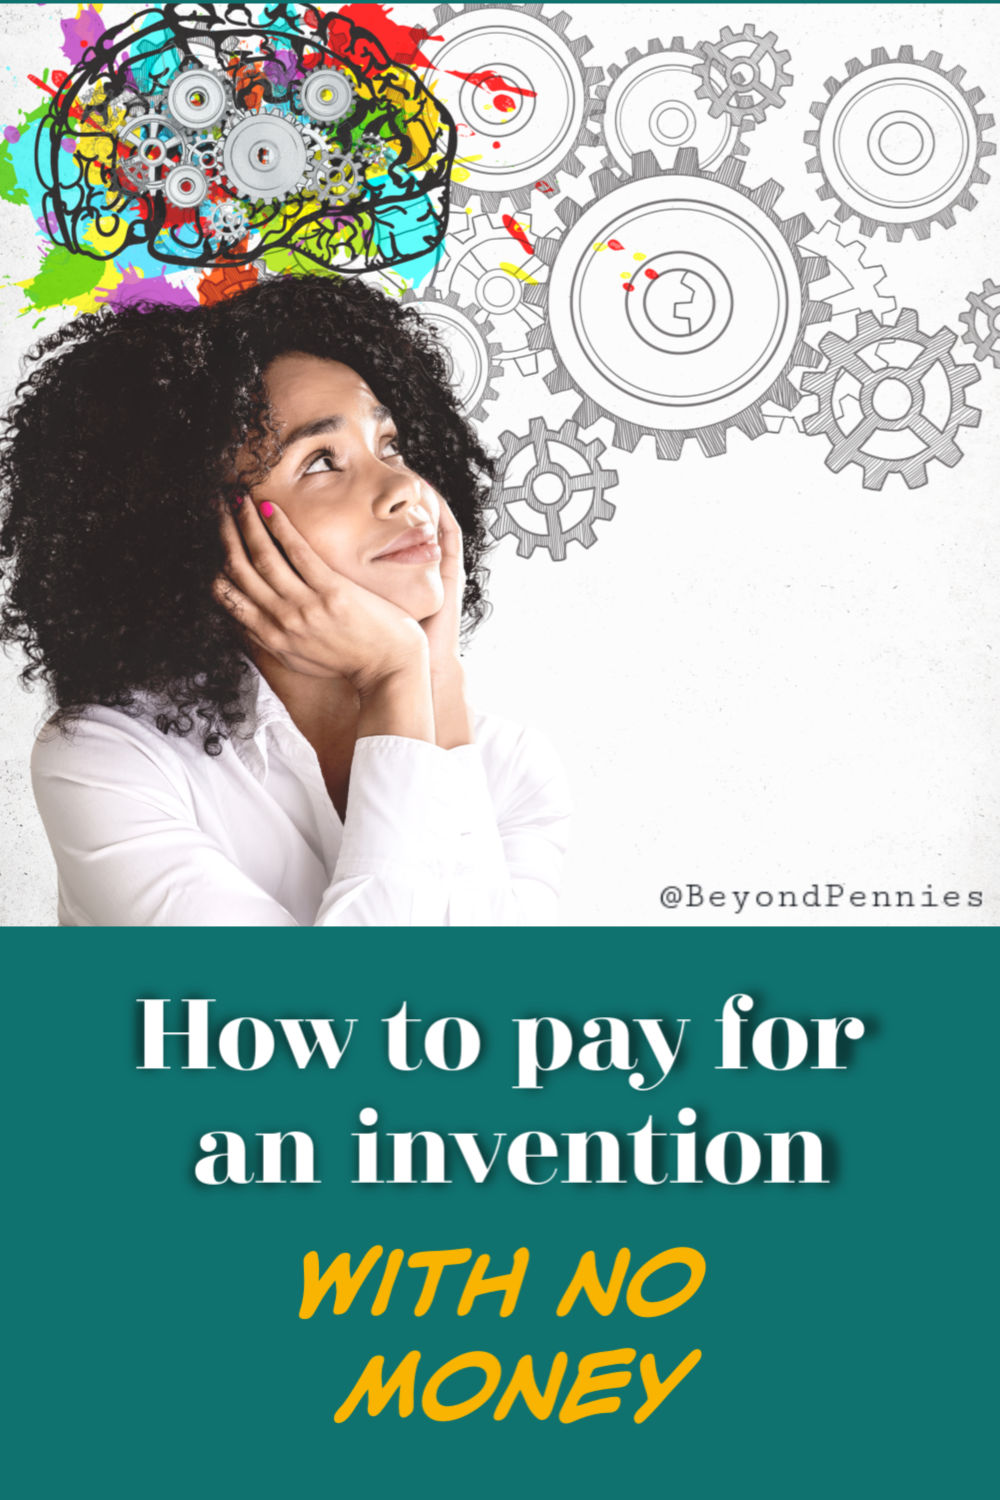 How to Pay for an Invention with No Money